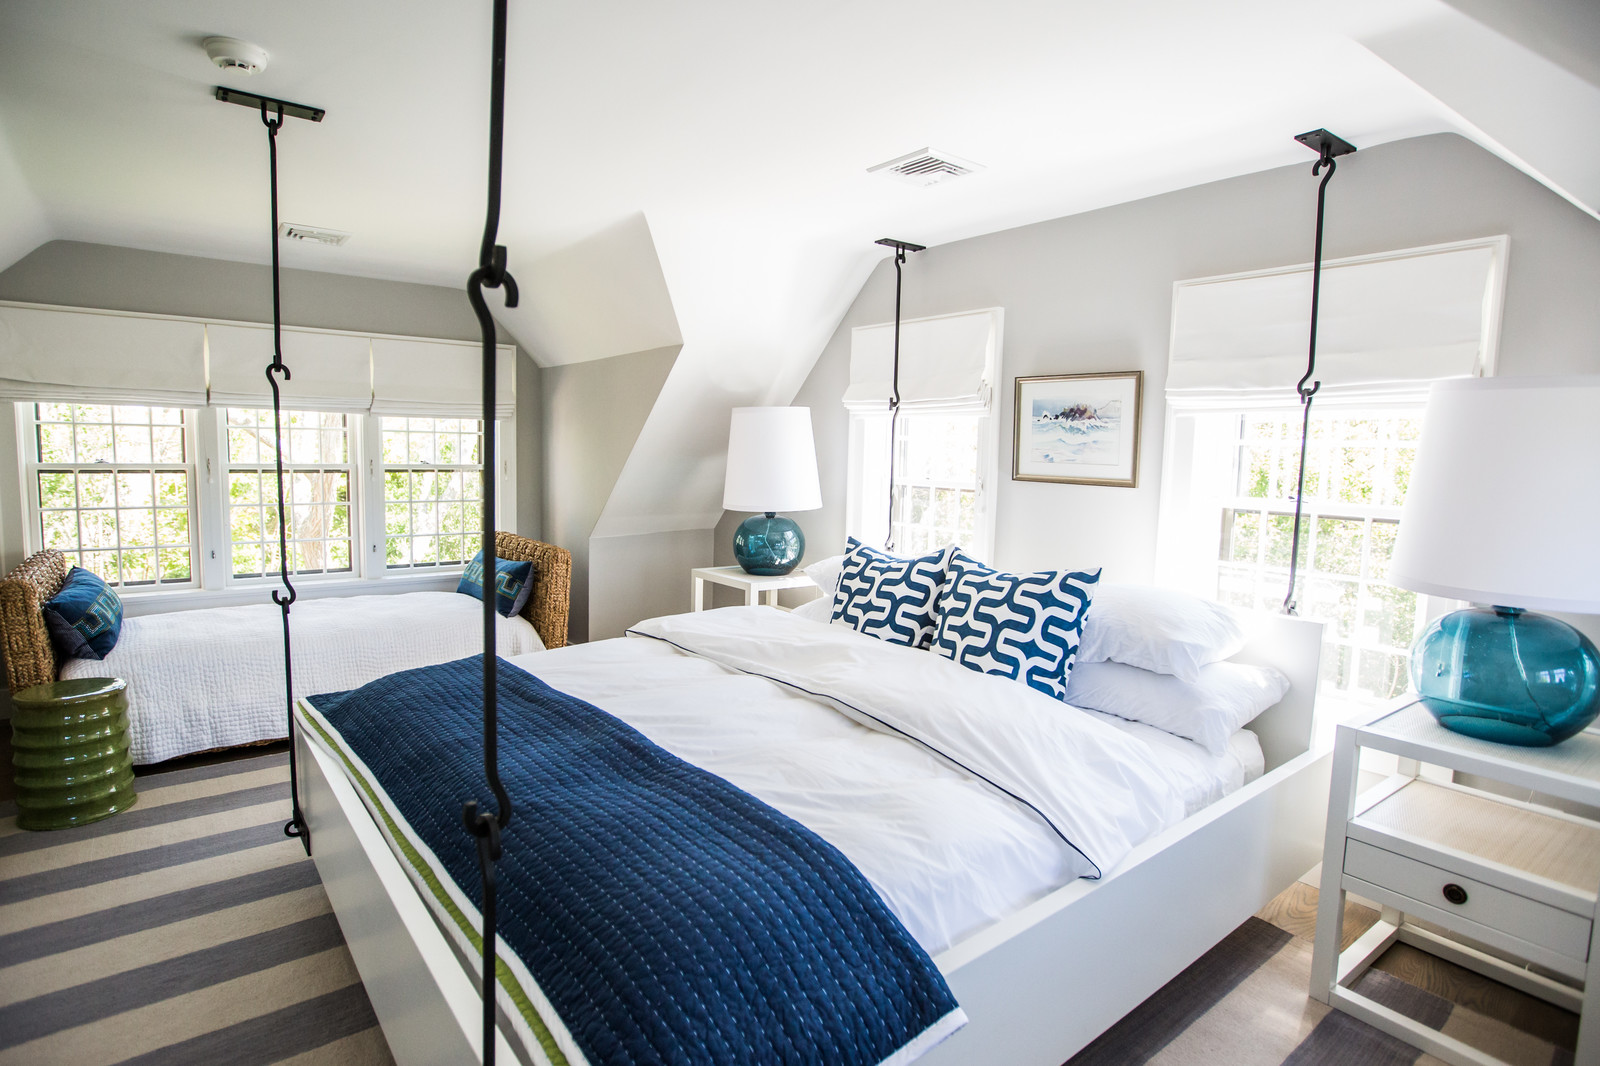 light grey bedroom with navy pillows and blanket